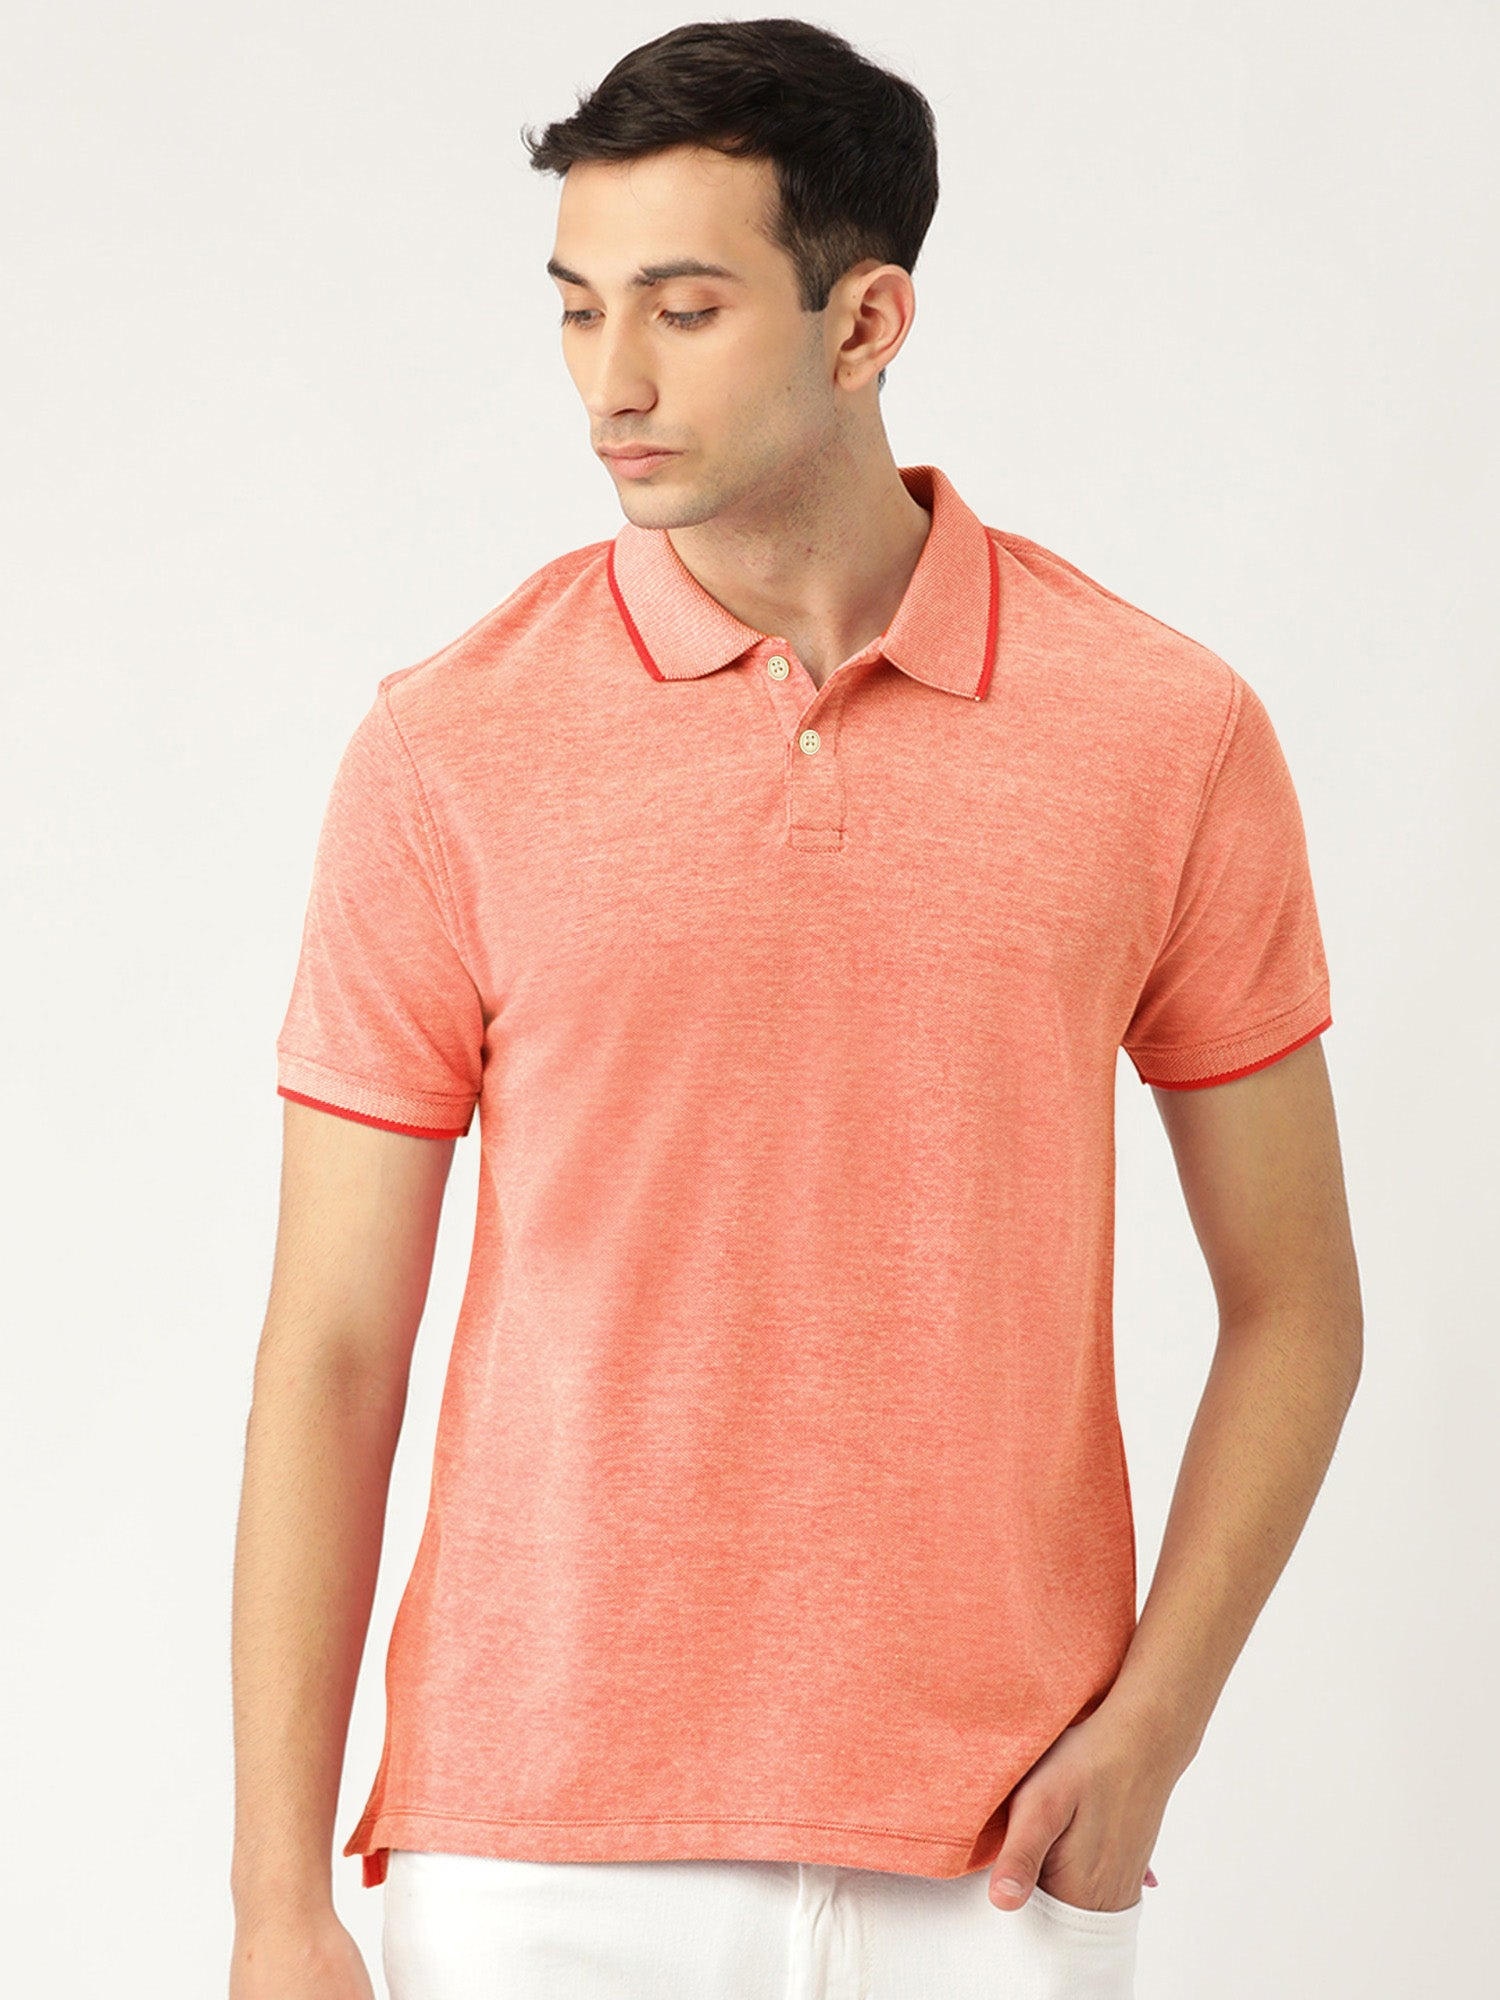 St Jhons's Bay Short Sleeve P.Q Polo Shirt For Men-Coral Orange Melange-BE14613